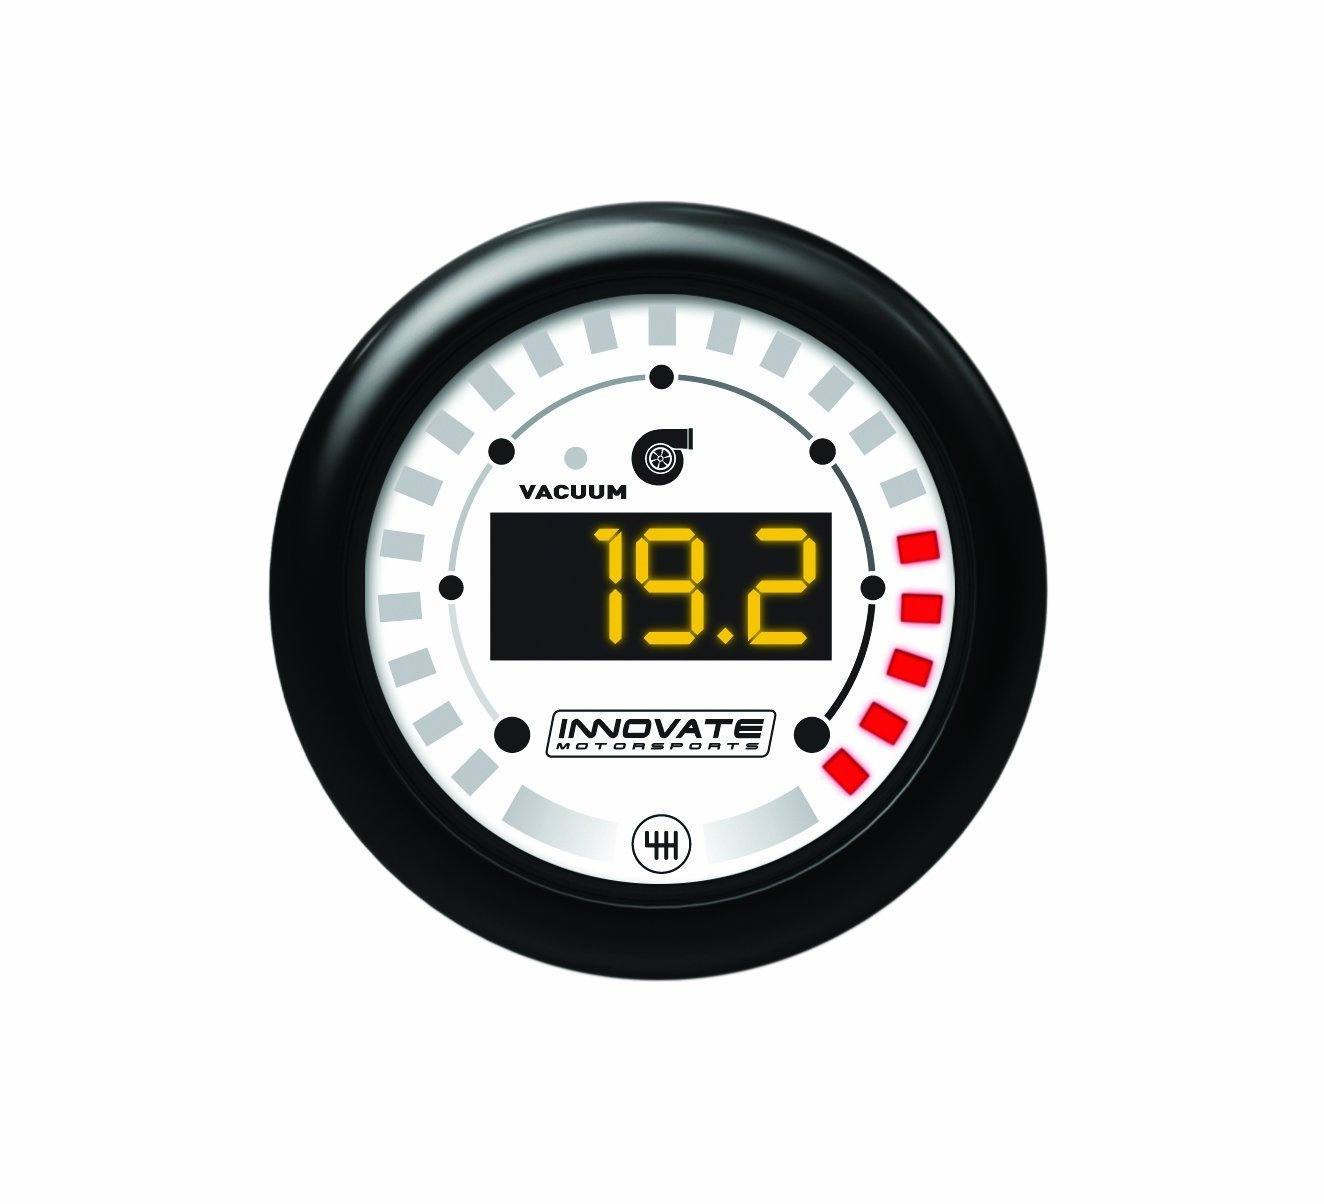 Innovate Motorsports 3851 MTX Digital Series Dual Function Vacuum/Boost and Shift Light Gauge Kit by Innovate Motorsports